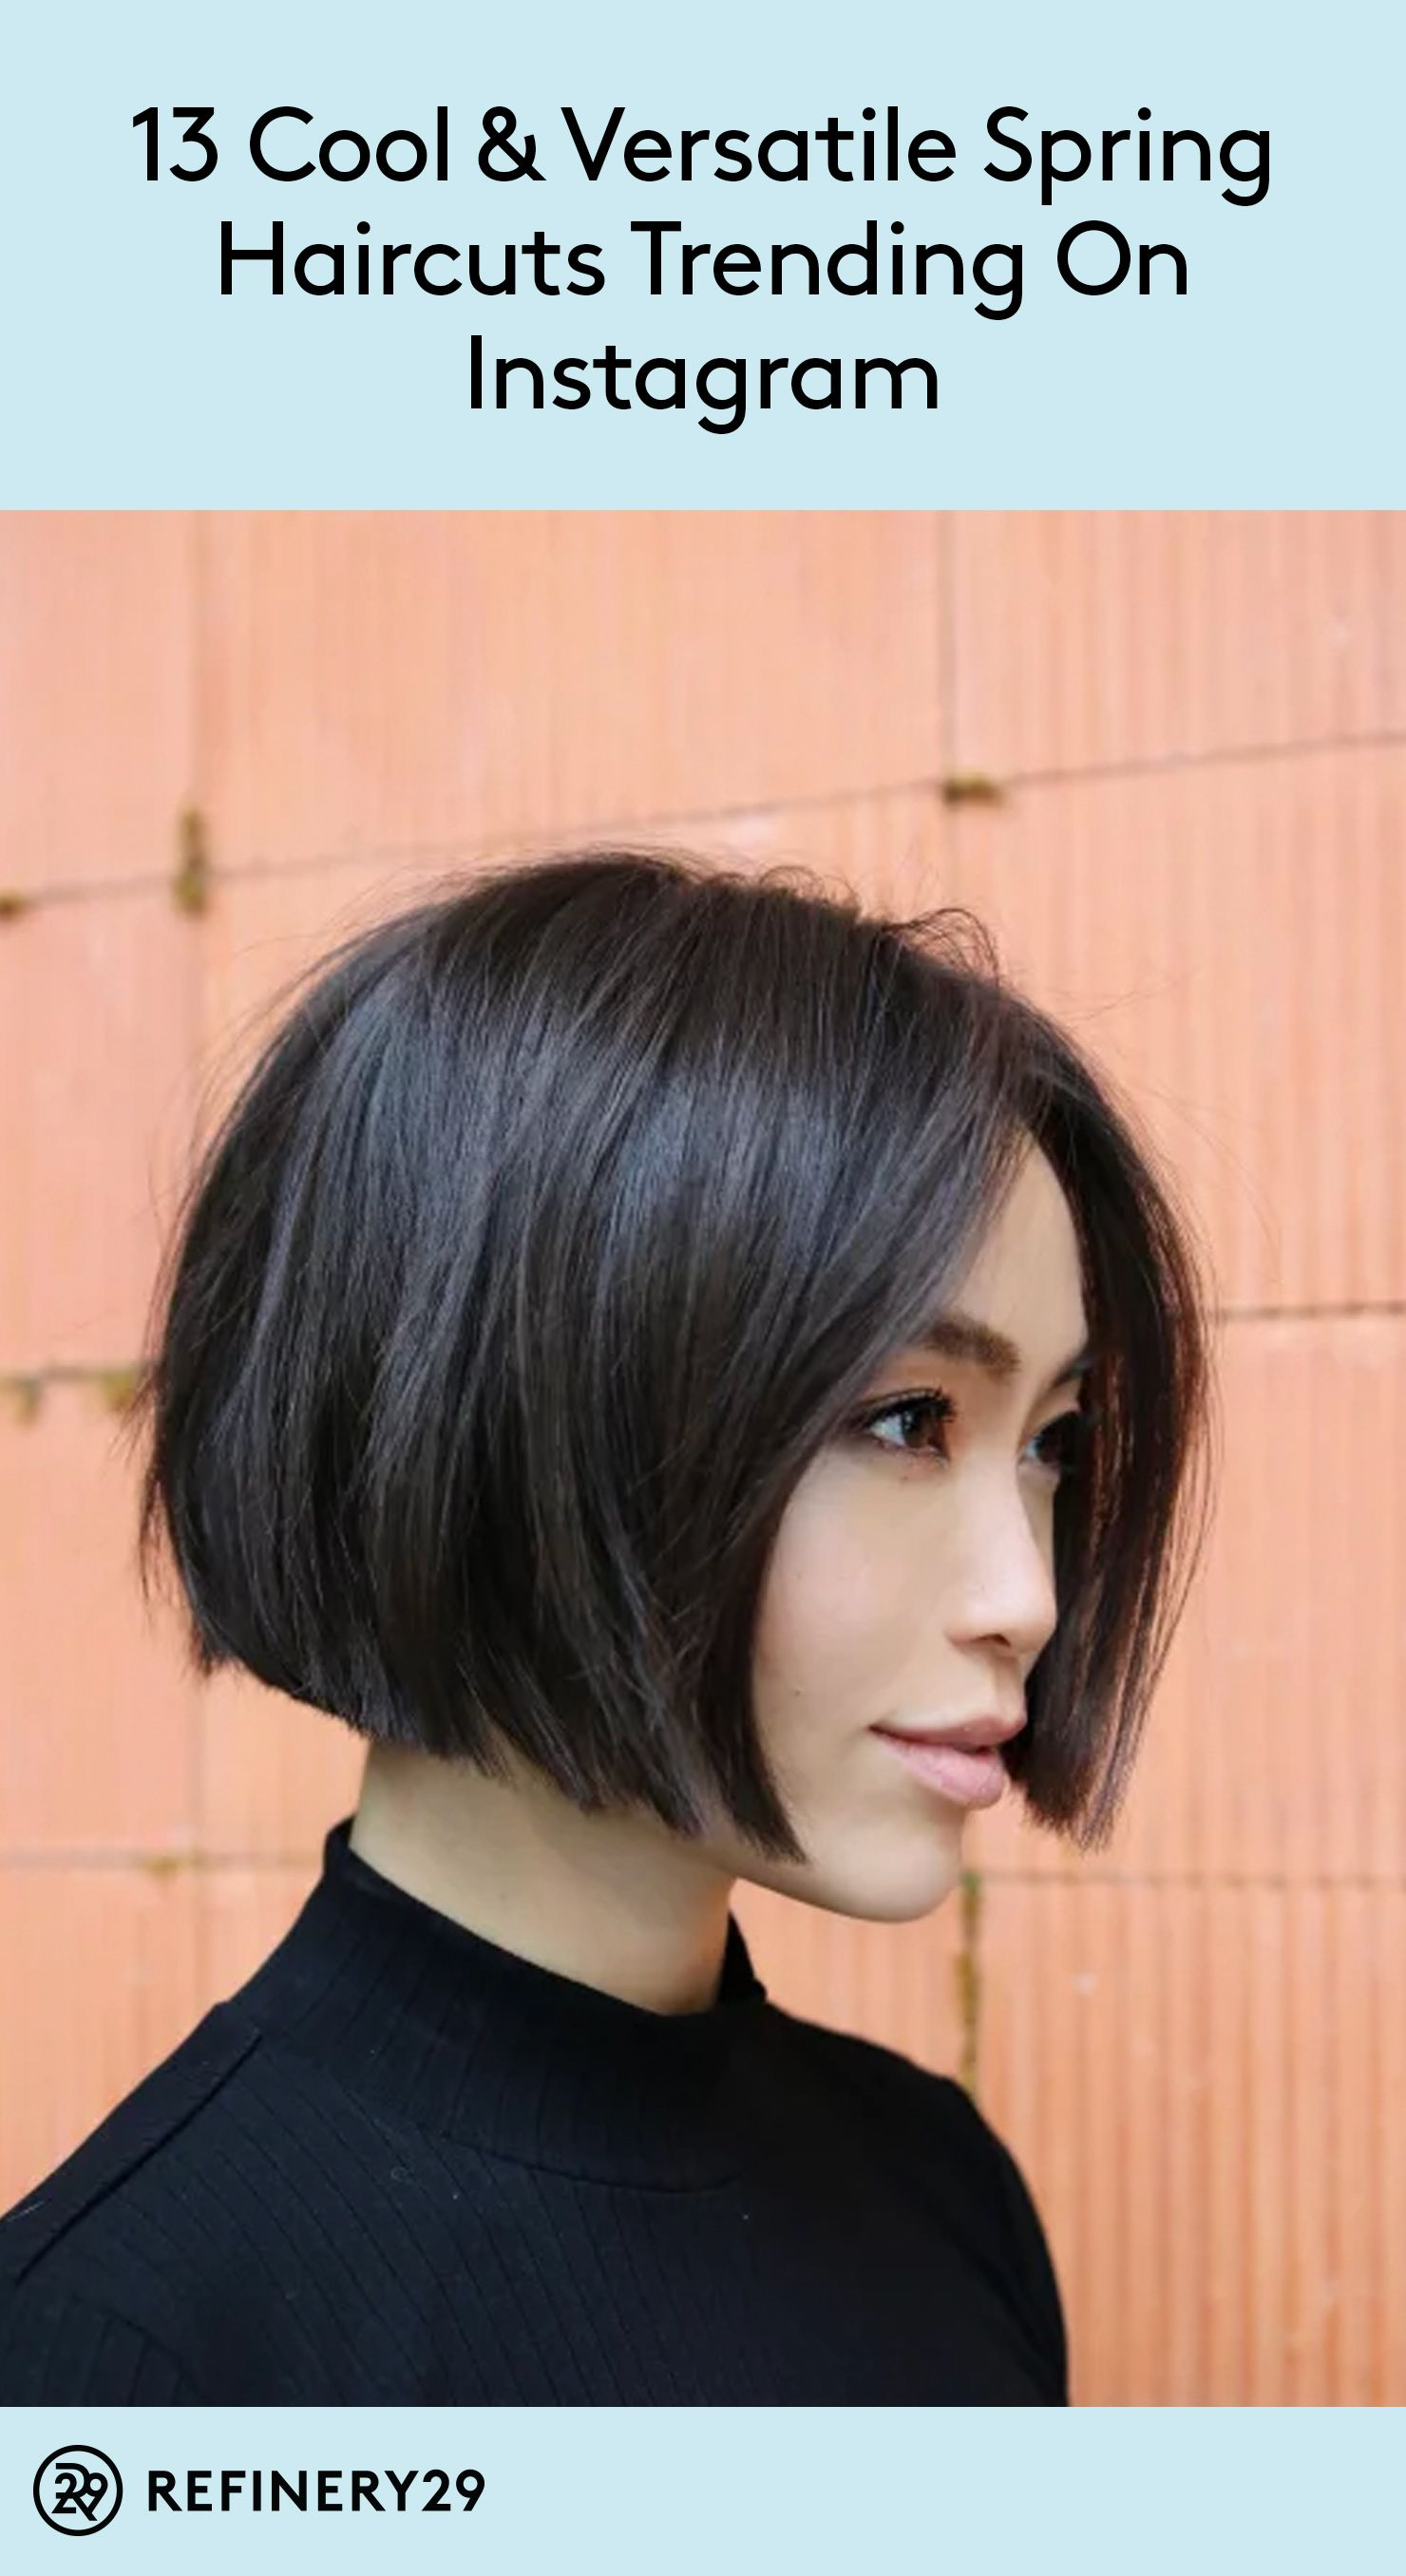 13 Cool Spring Haircuts Trending On Instagram